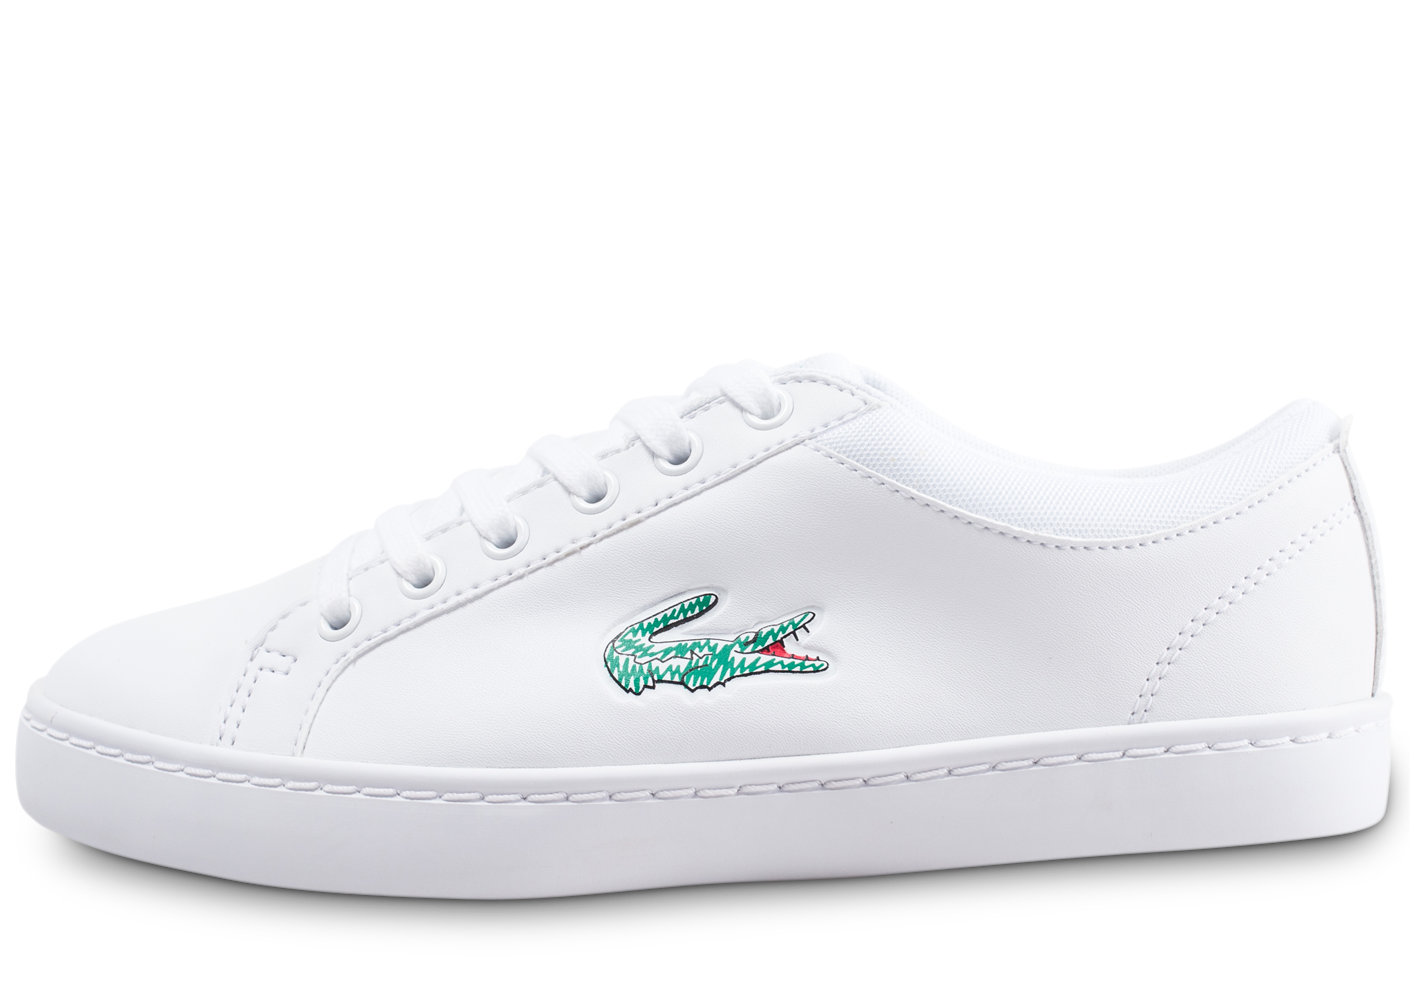 Lacoste Enfant Straightset Junior Blanche Baskets